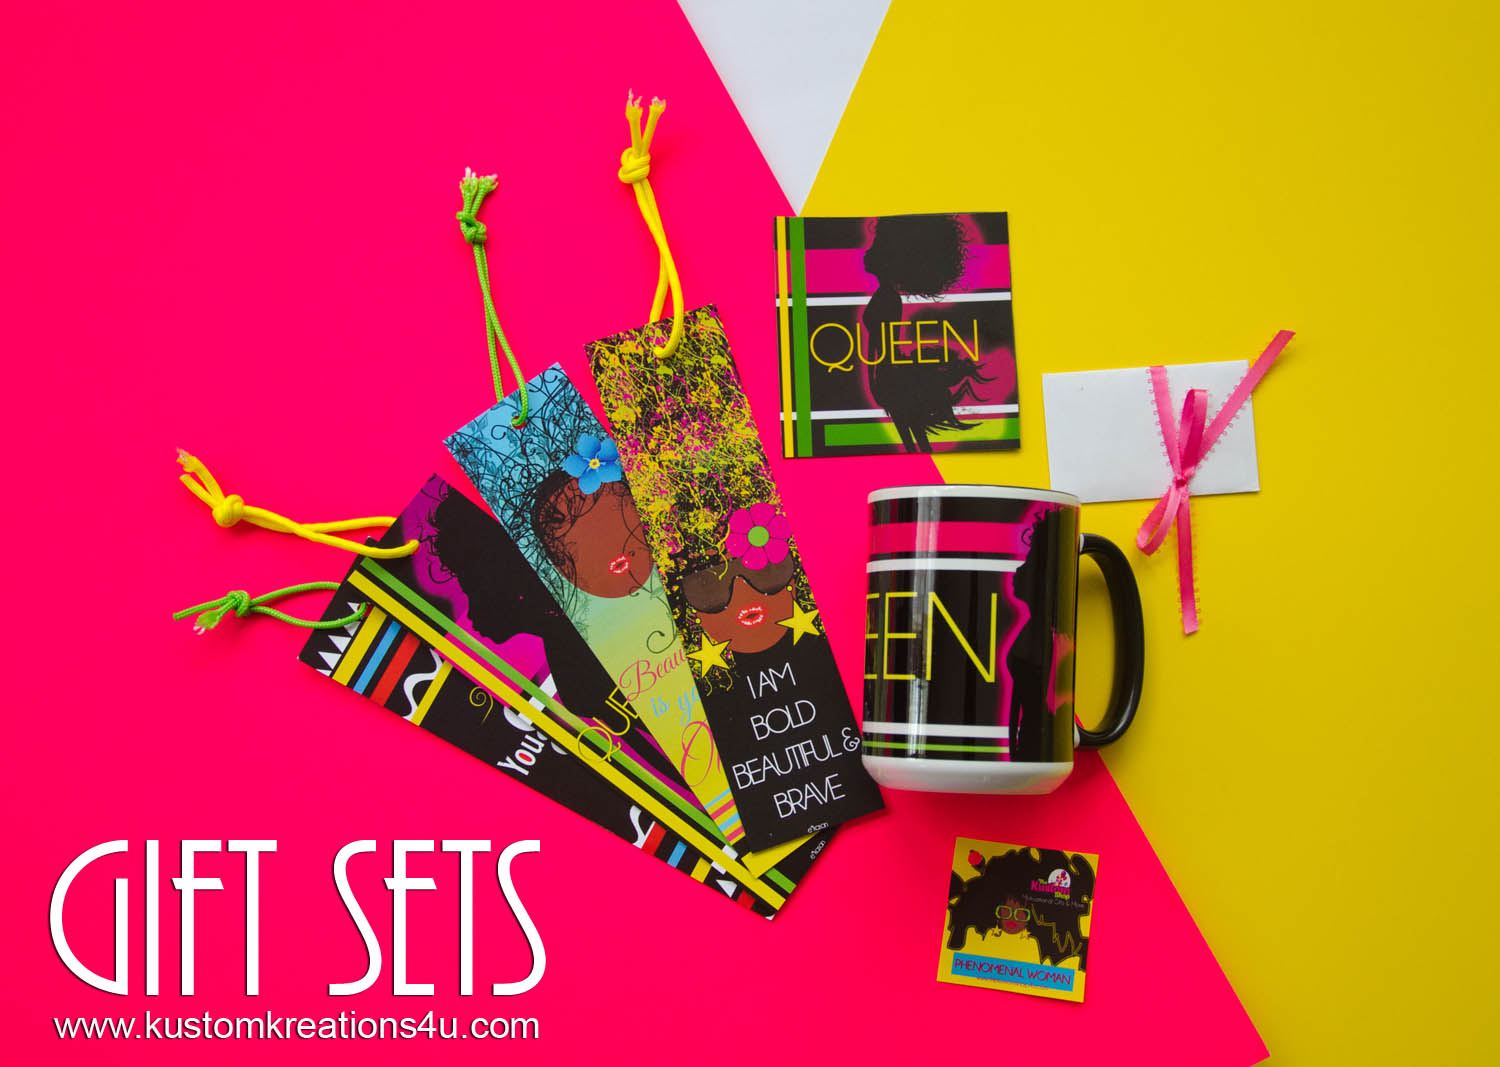 Gift Sets- Queen Black Art Gift Sets